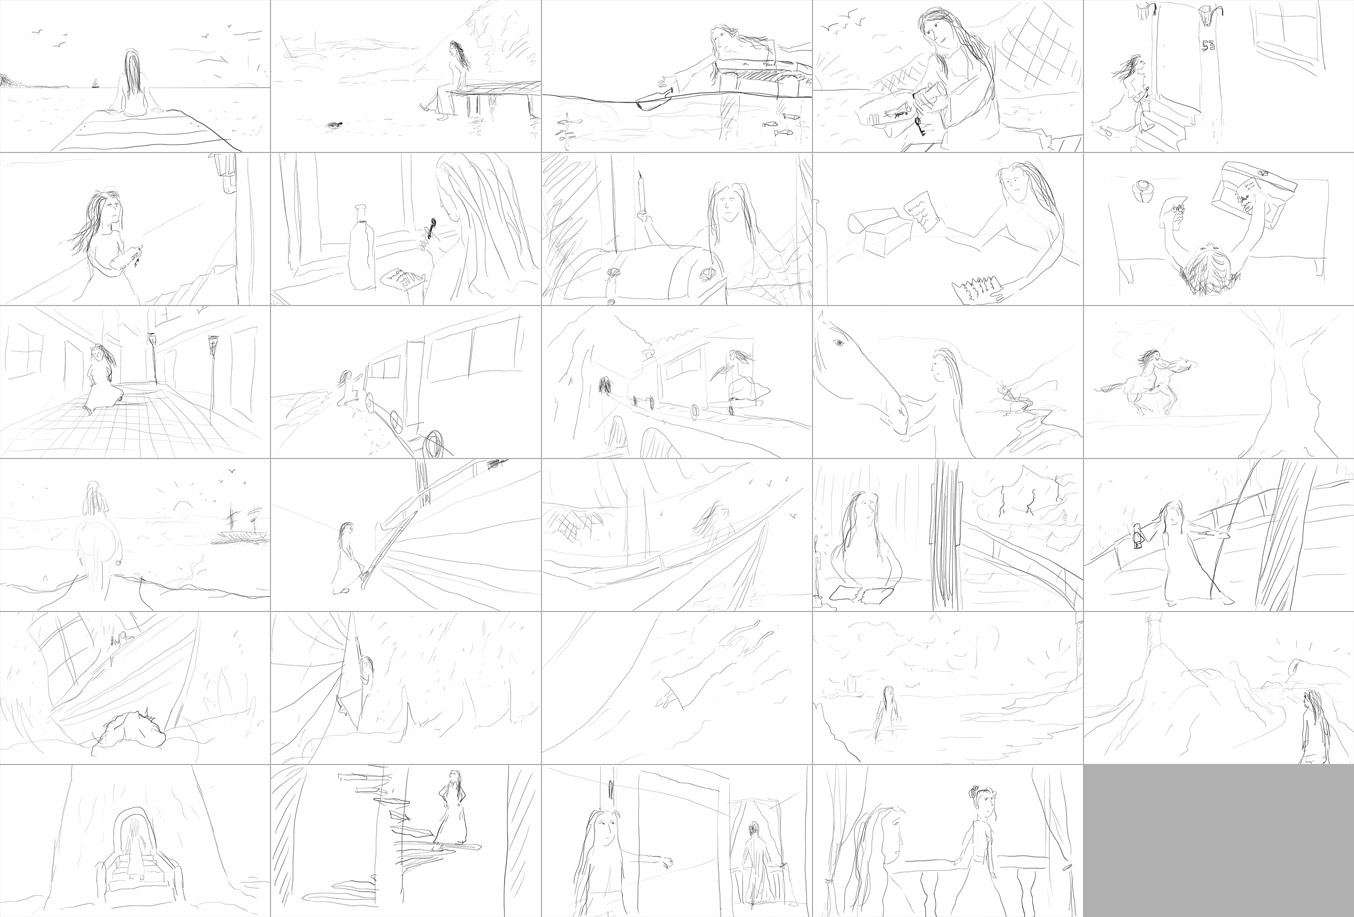 Letter in a bottle - storyboard sketch